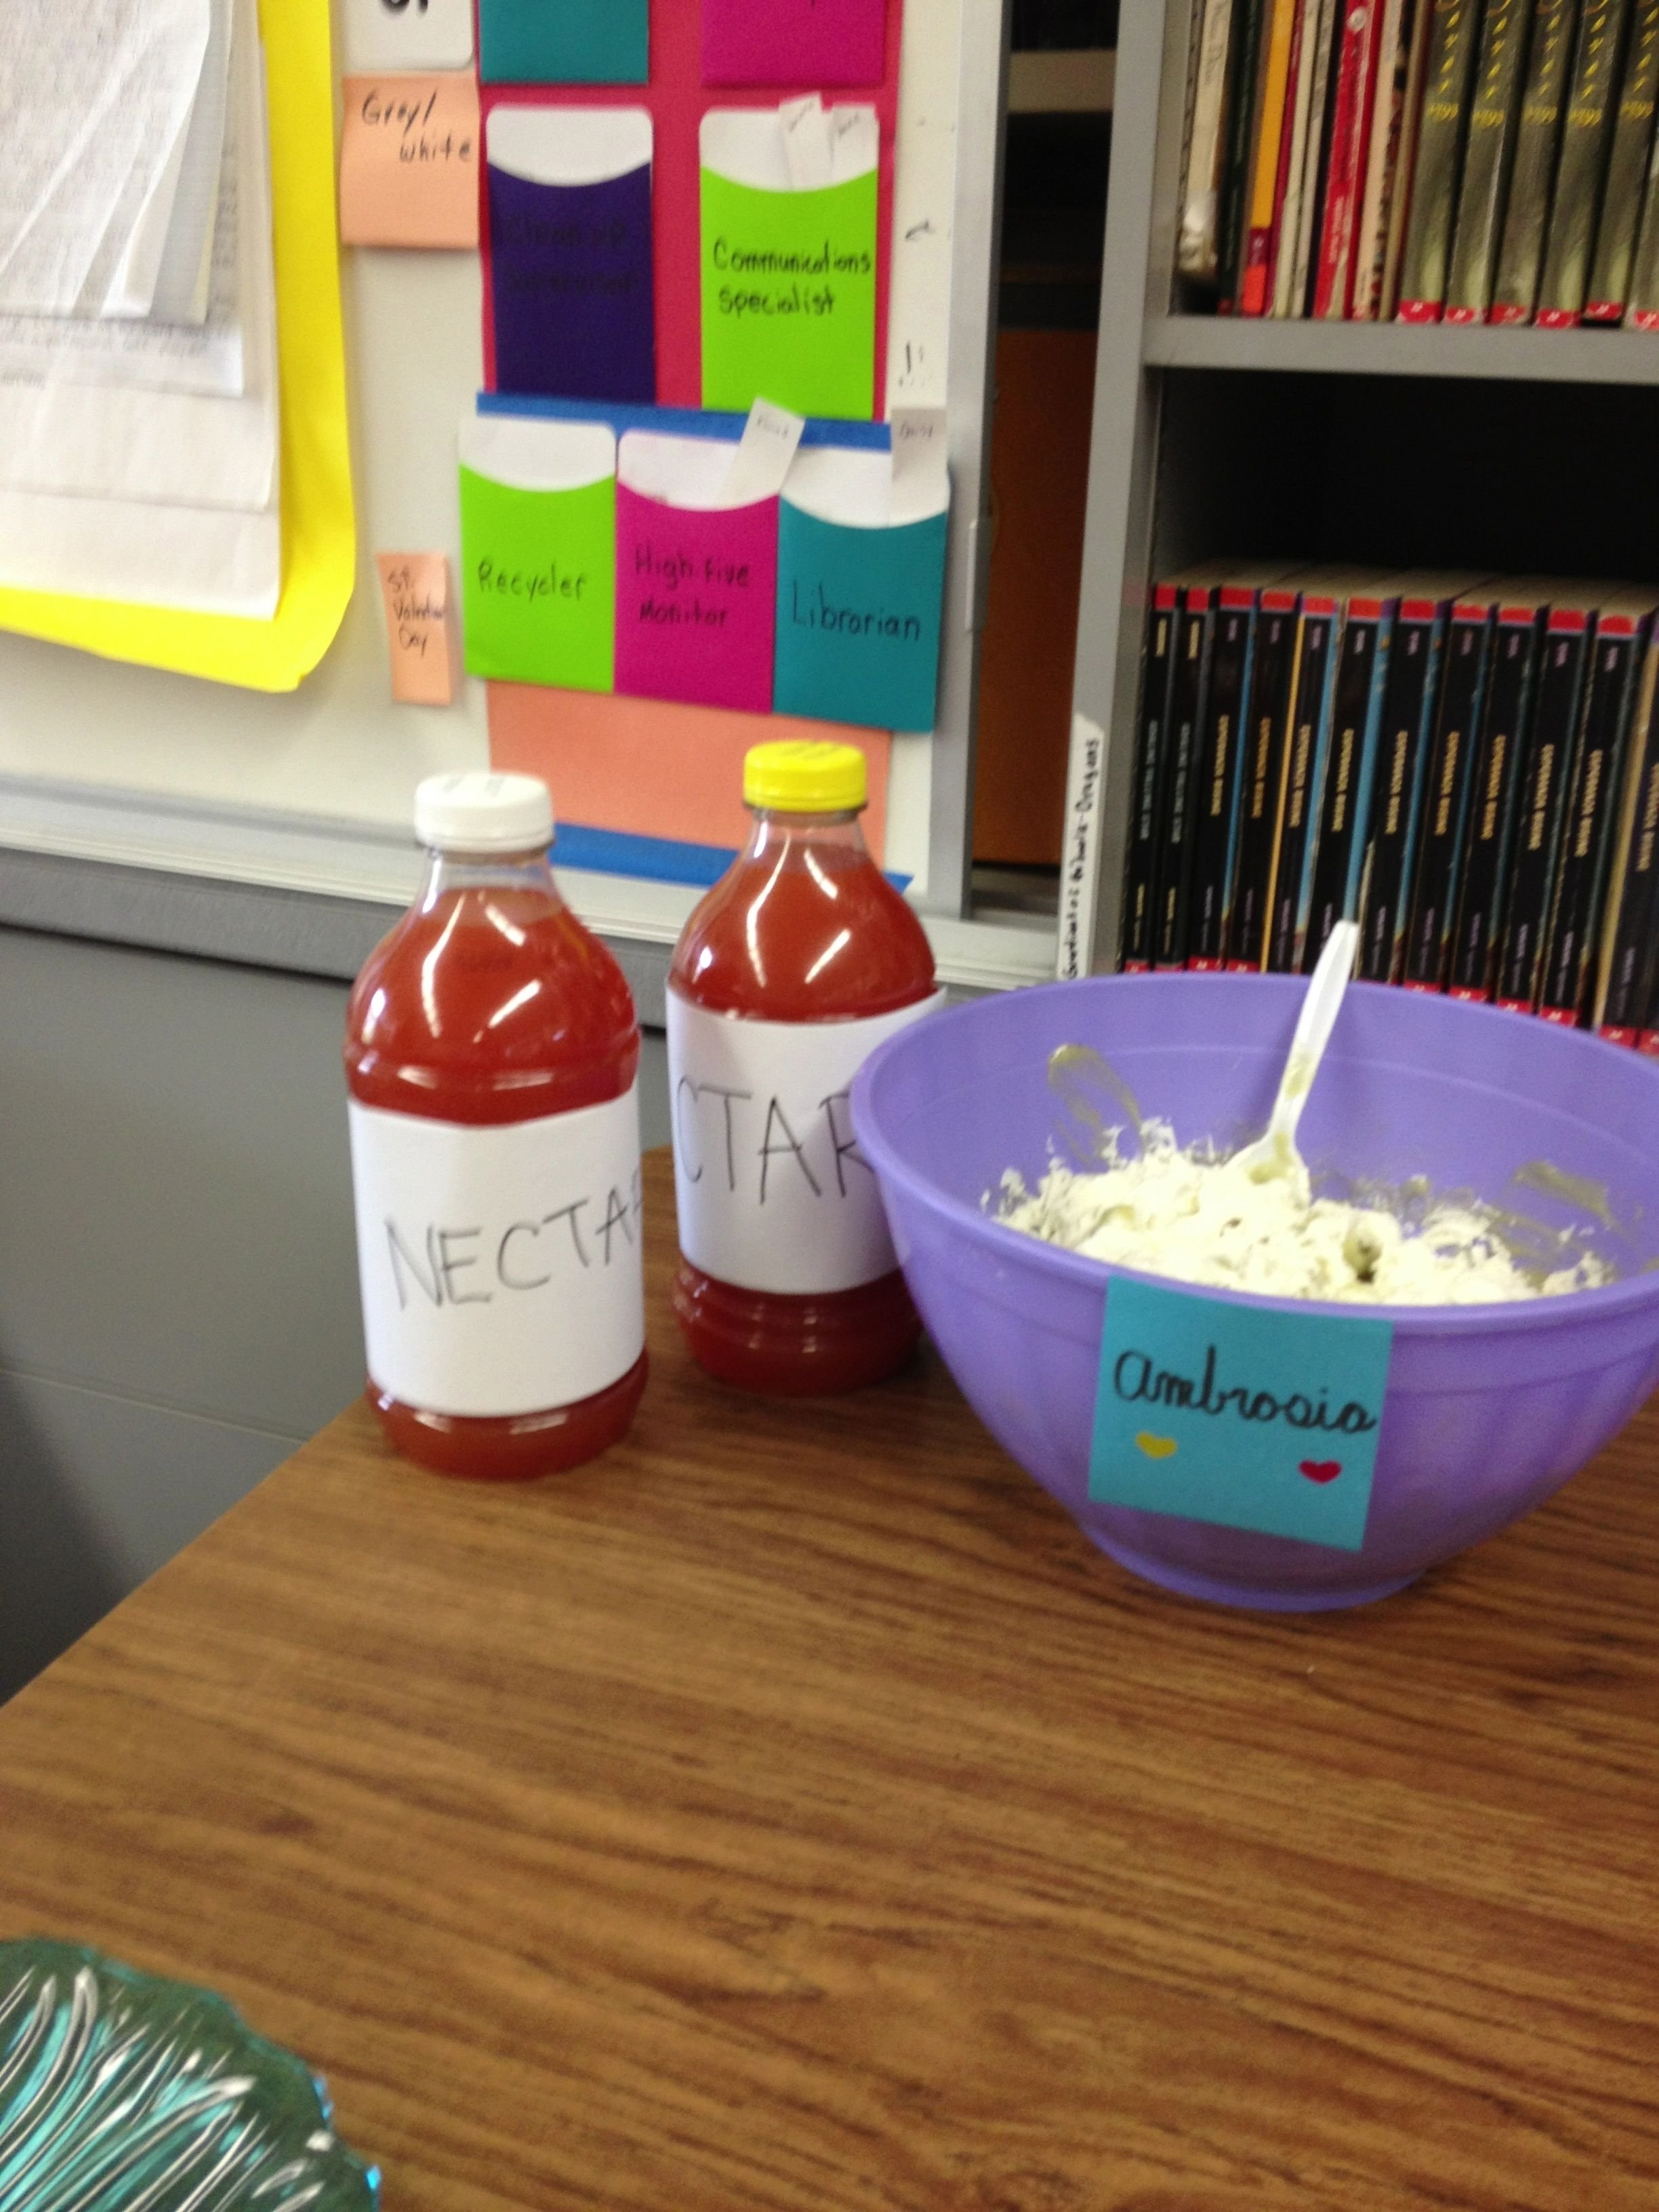 10 Lovely Percy Jackson Birthday Party Ideas for a percy jackson party nectar juice and ambrosia whipped 2021